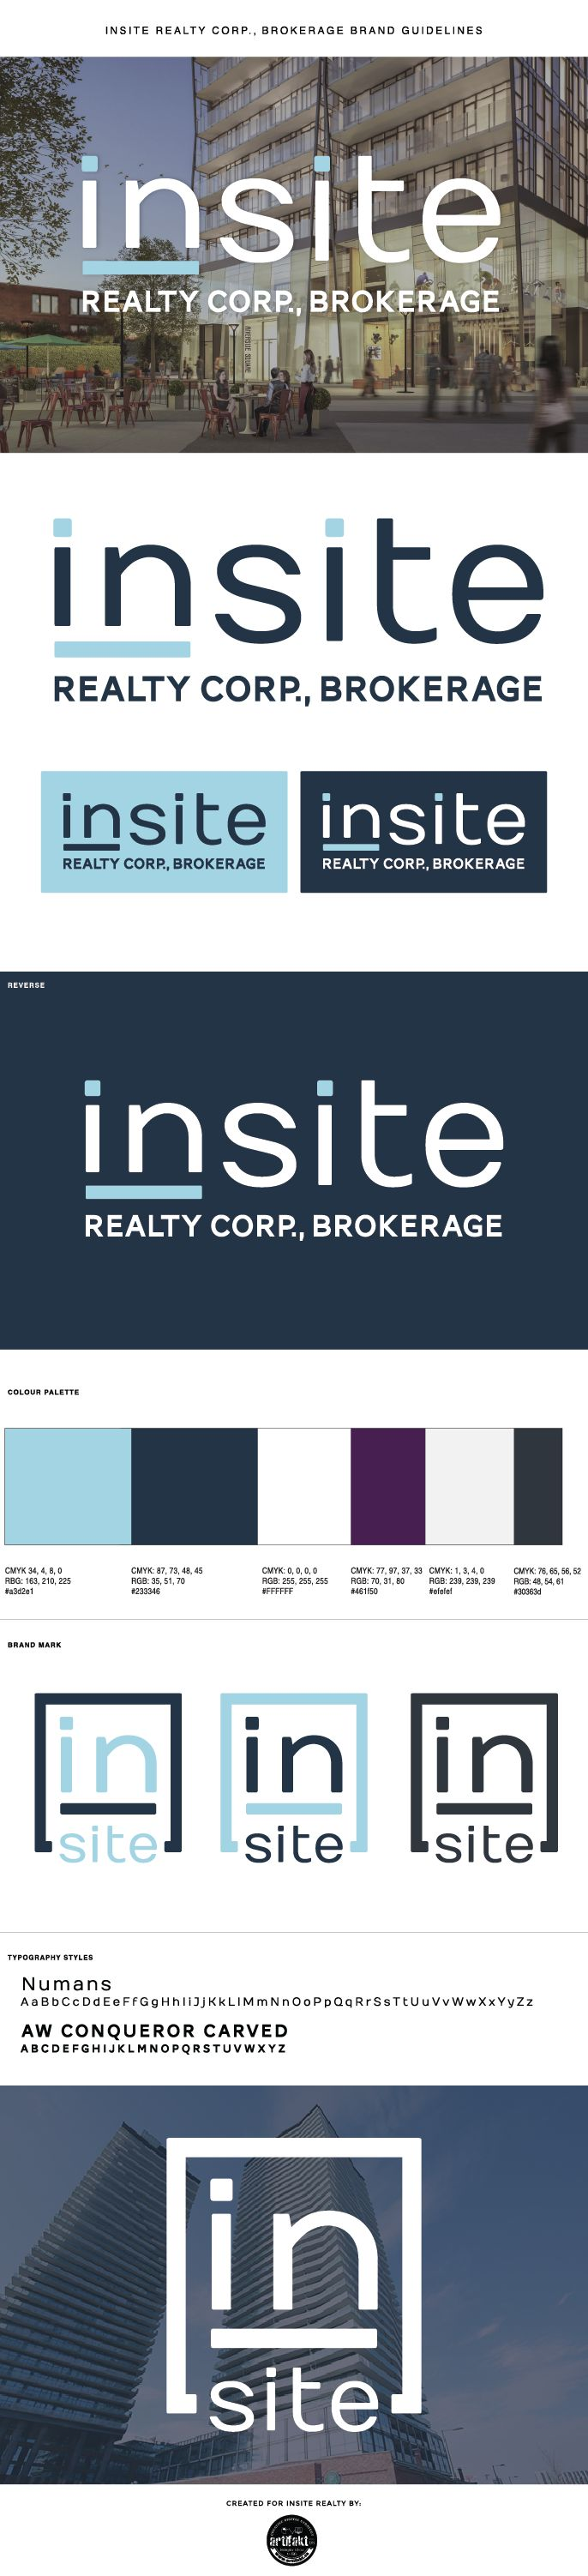 The completed branding guidelines we did for the Insite Realty Corp Digital Strategy Project.